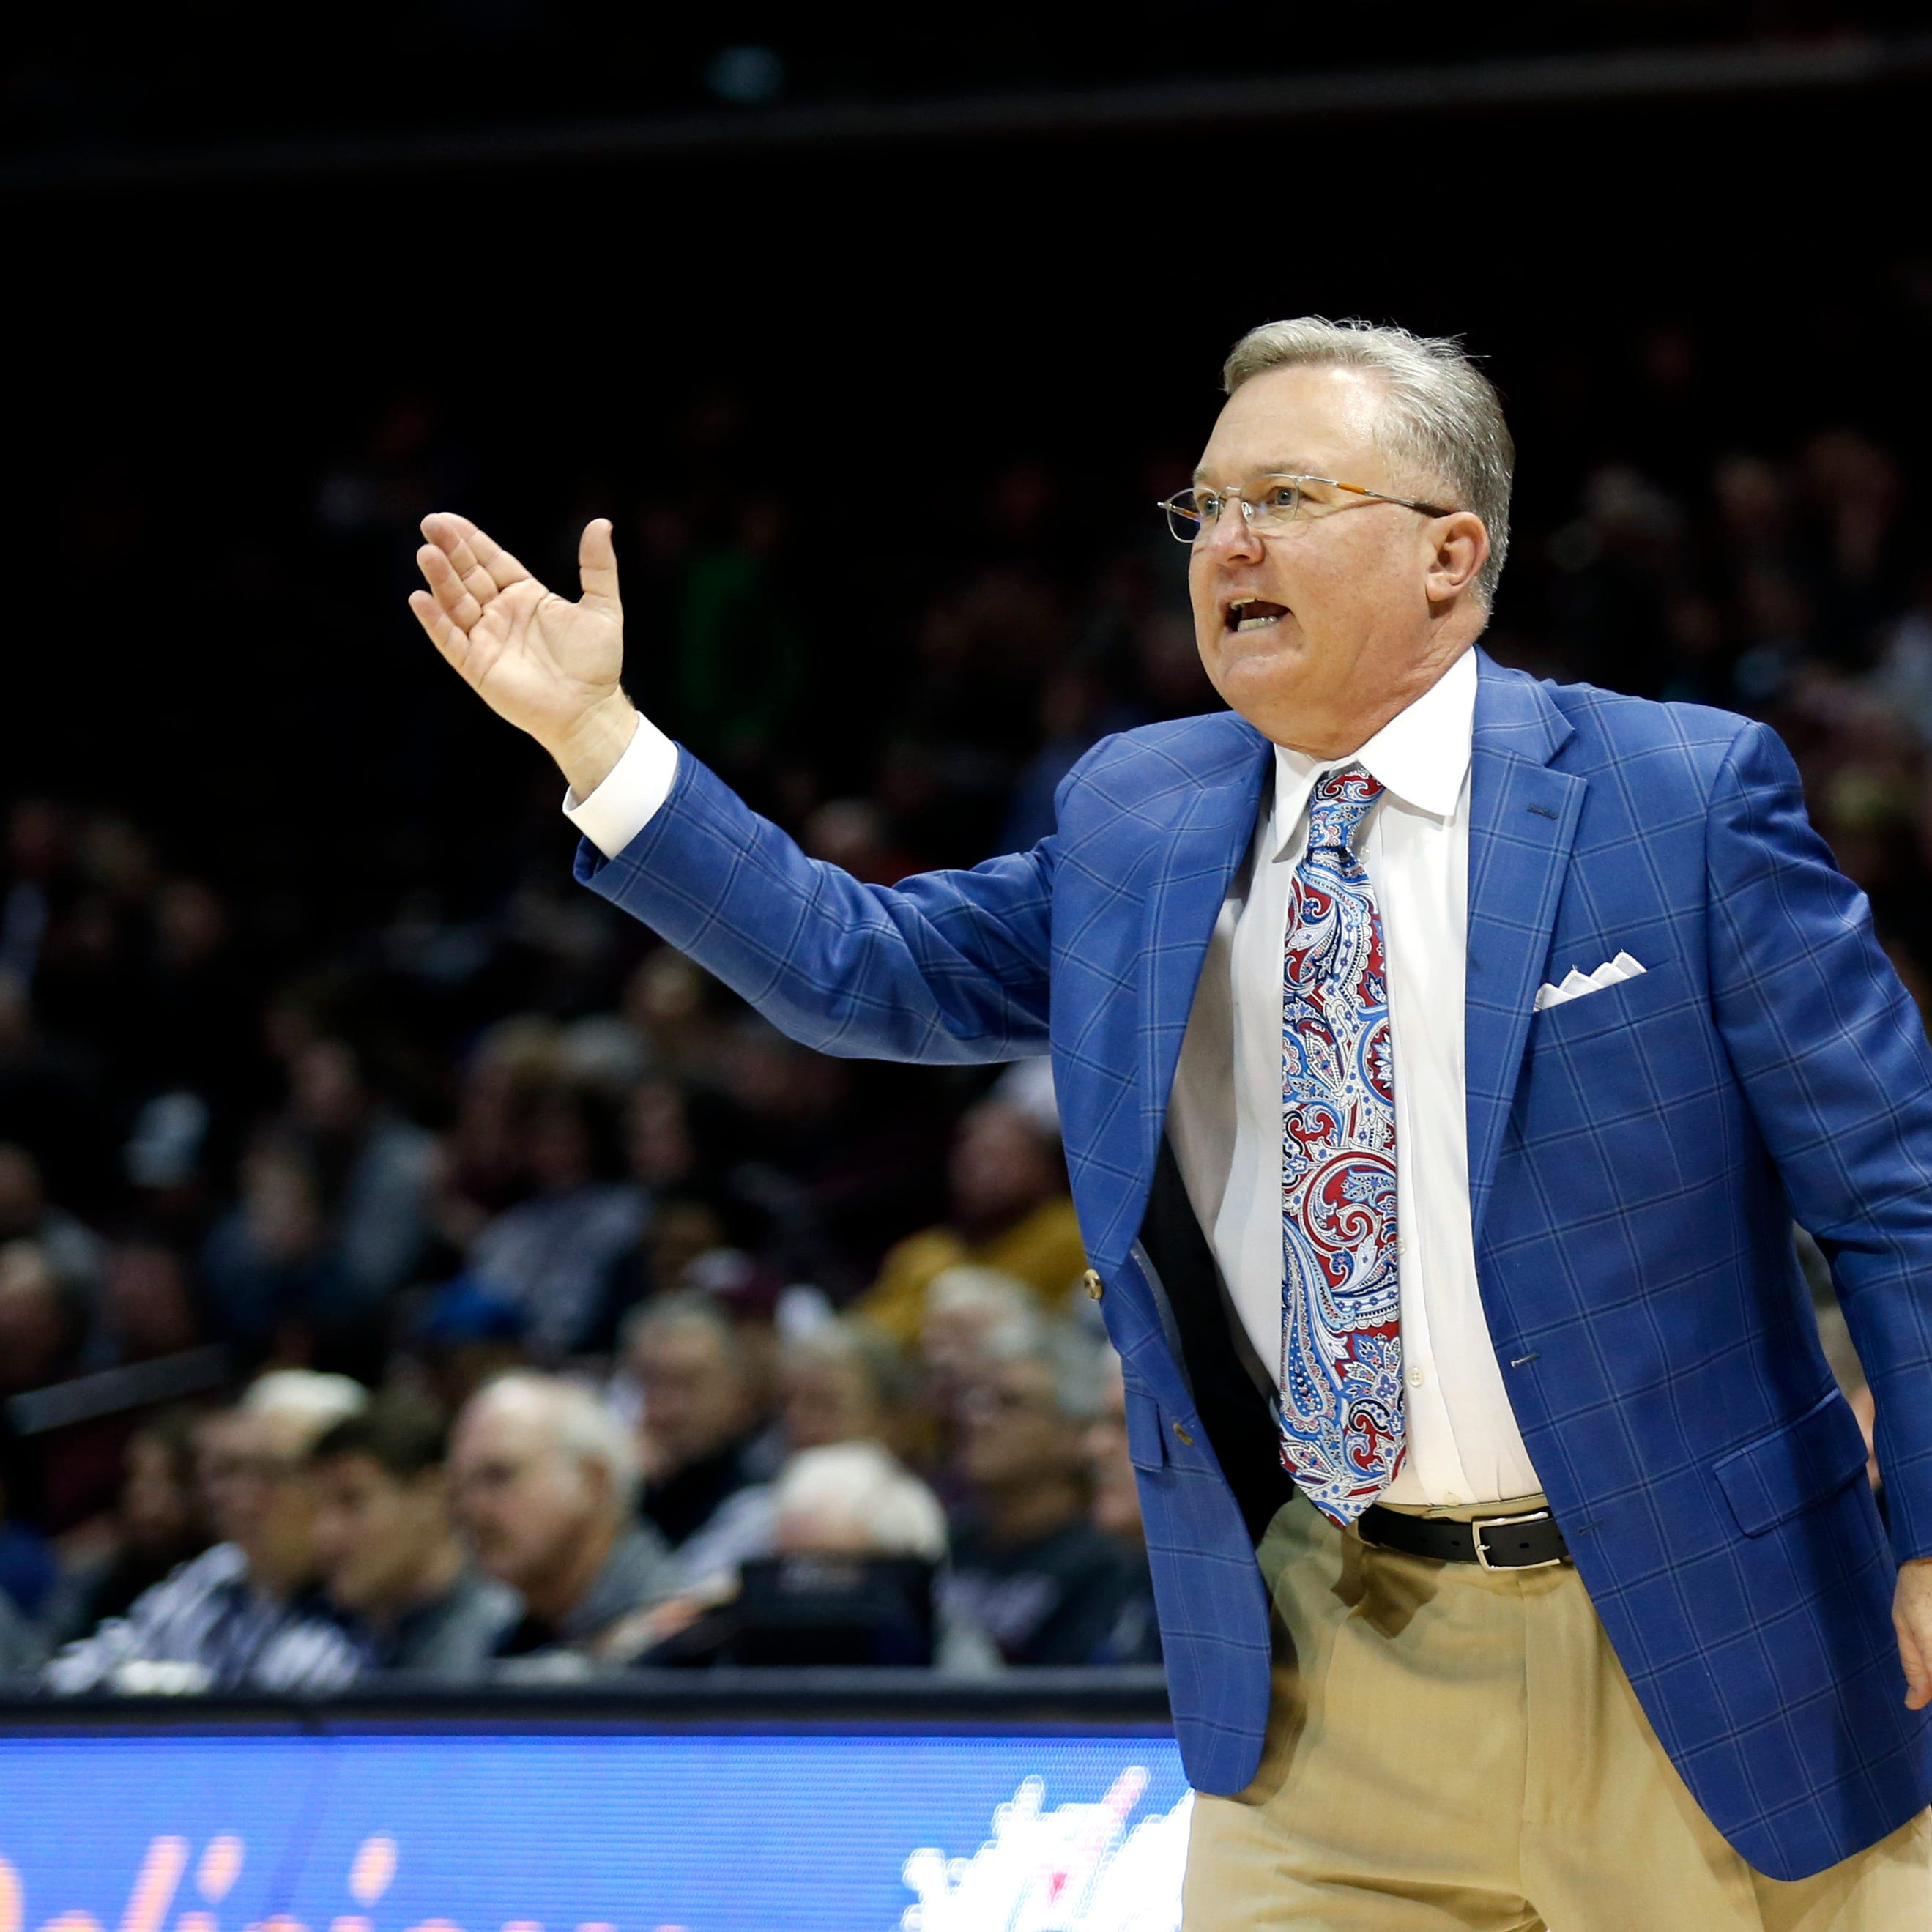 Former Bears coach Barry Hinson announces he is no longer Southern Illinois' head coach